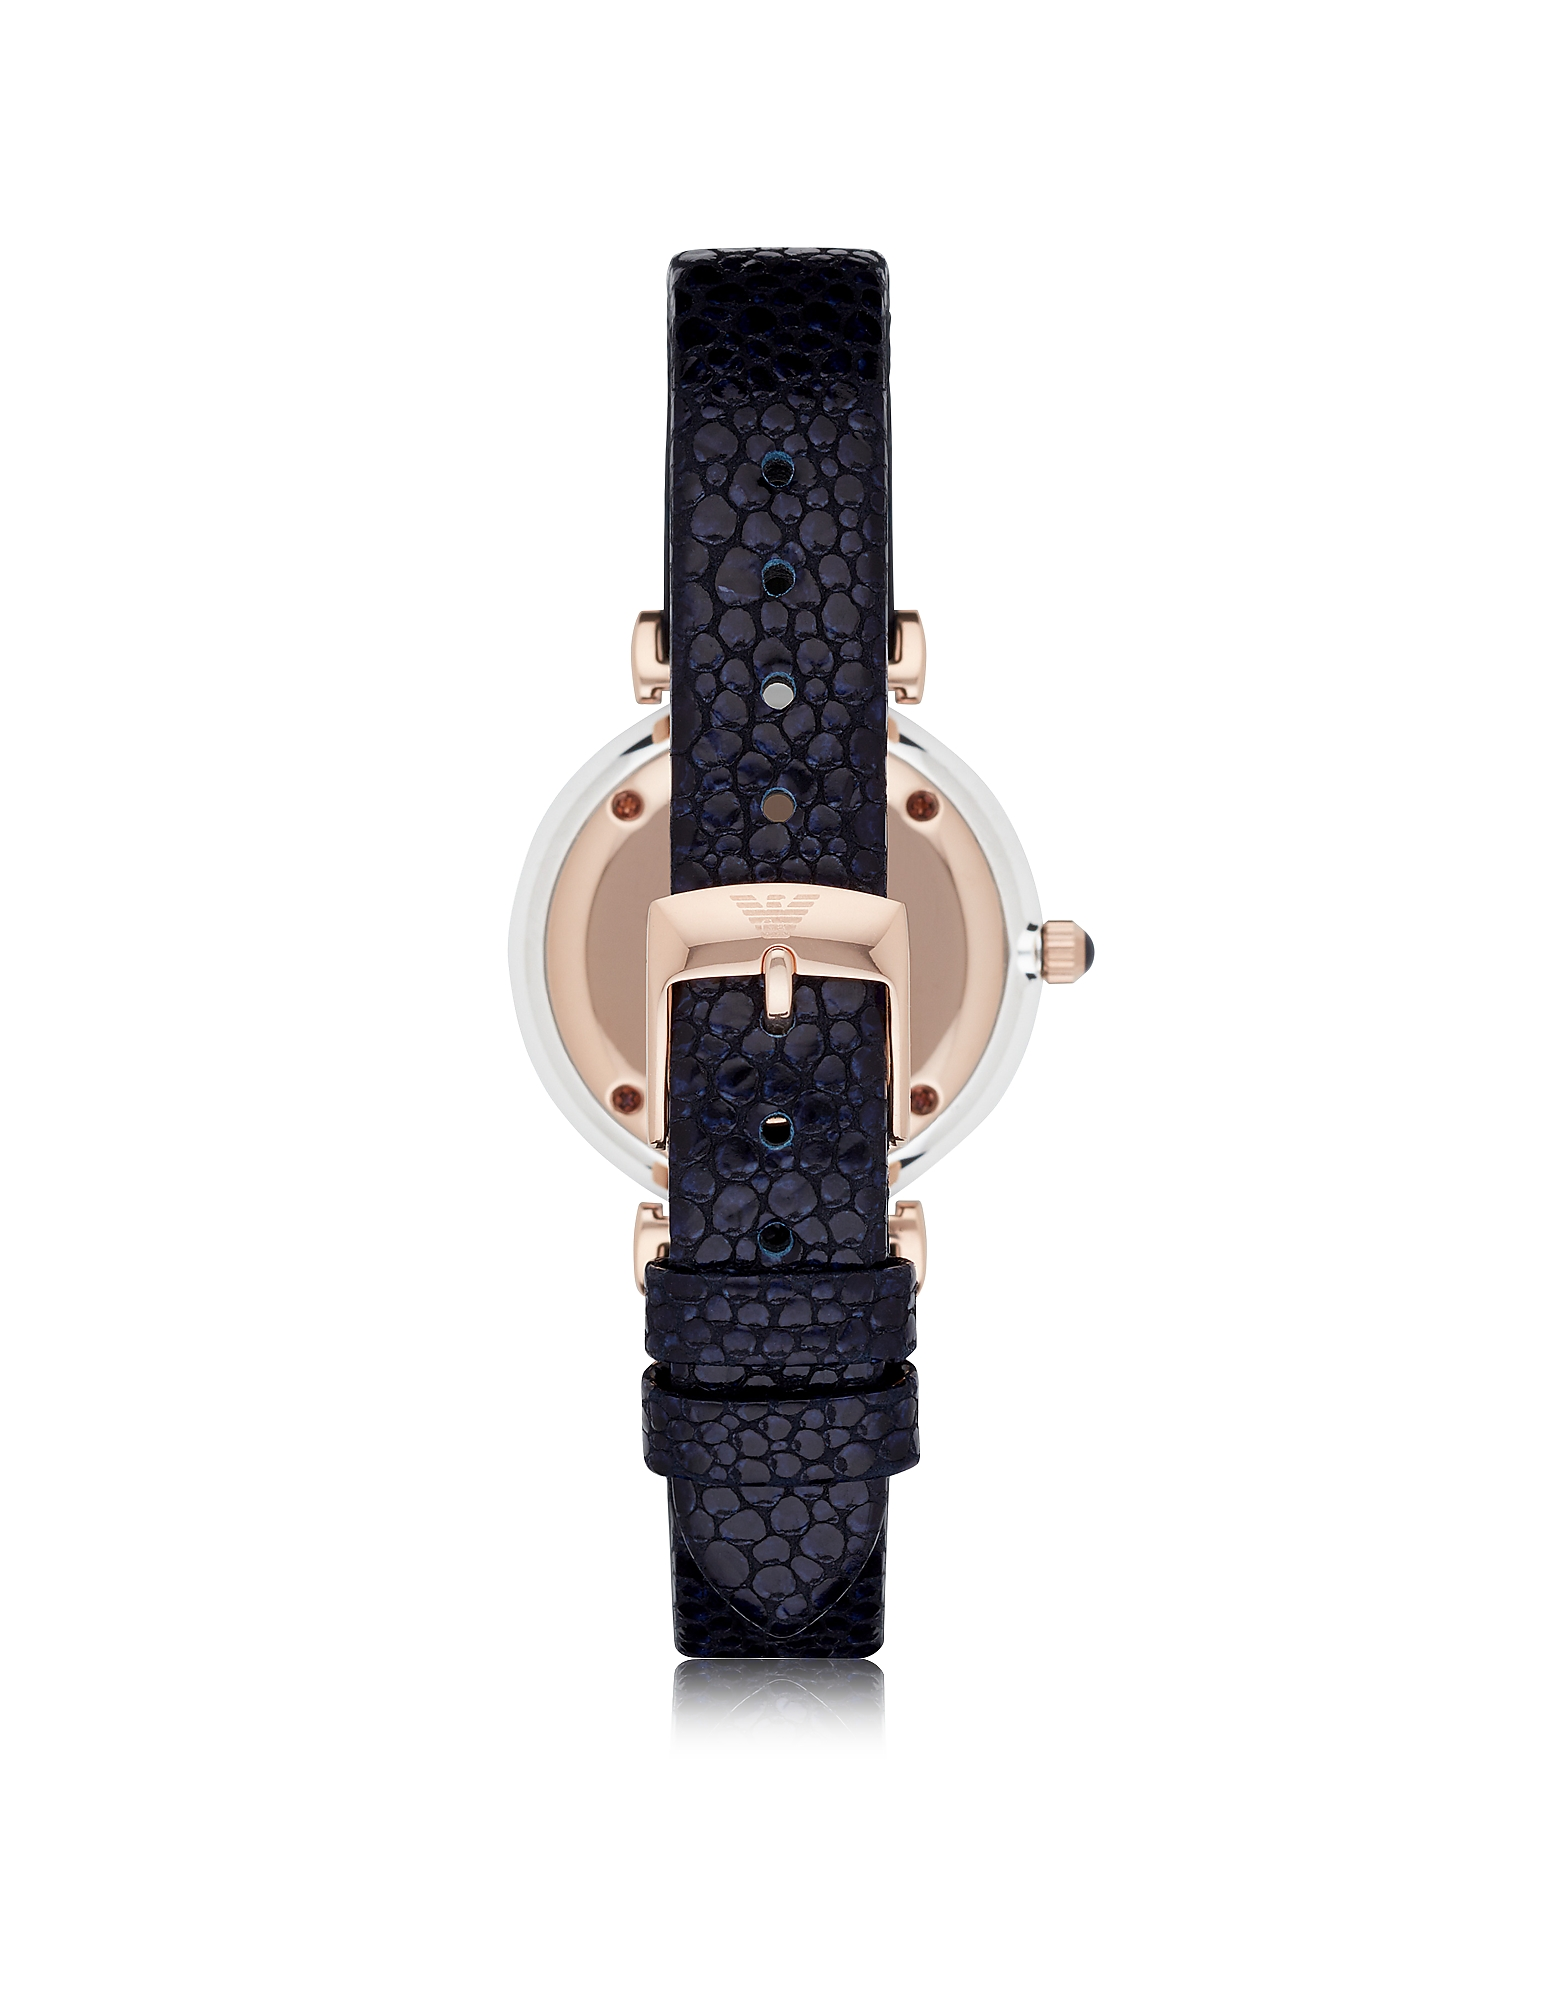 T-Bar Stainless Steel Women's Quartz Watch w/Midnight Blue Leather Strap от Forzieri.com INT